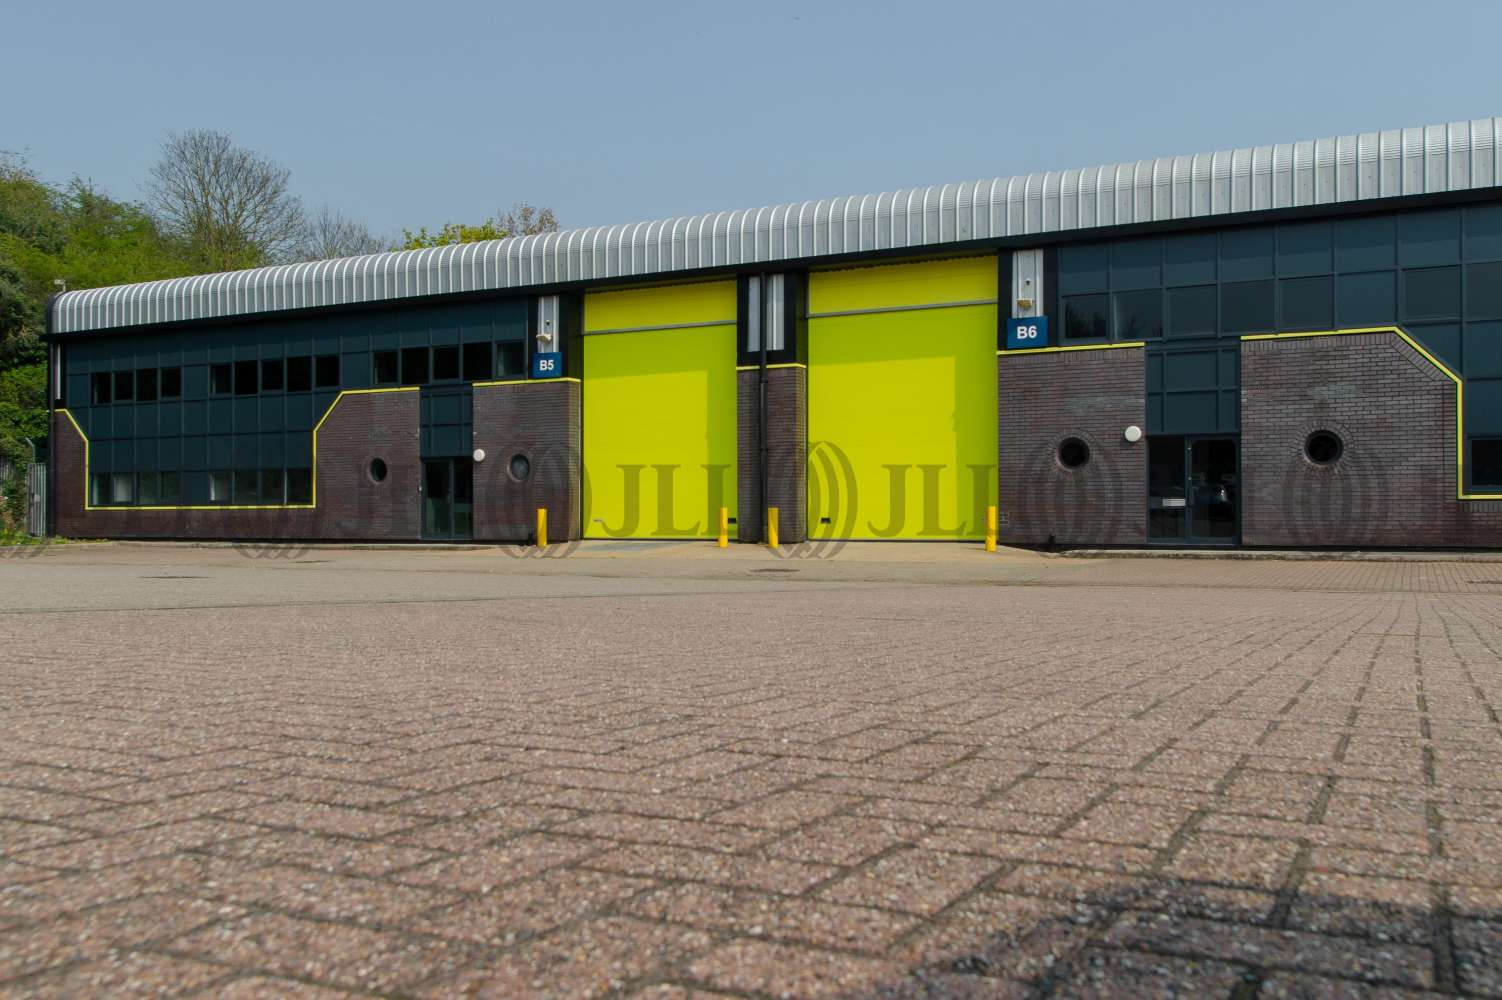 Industrial Rochester, ME2 2JU - Units B5 & B6 Chariot Way, Medway Valley Park